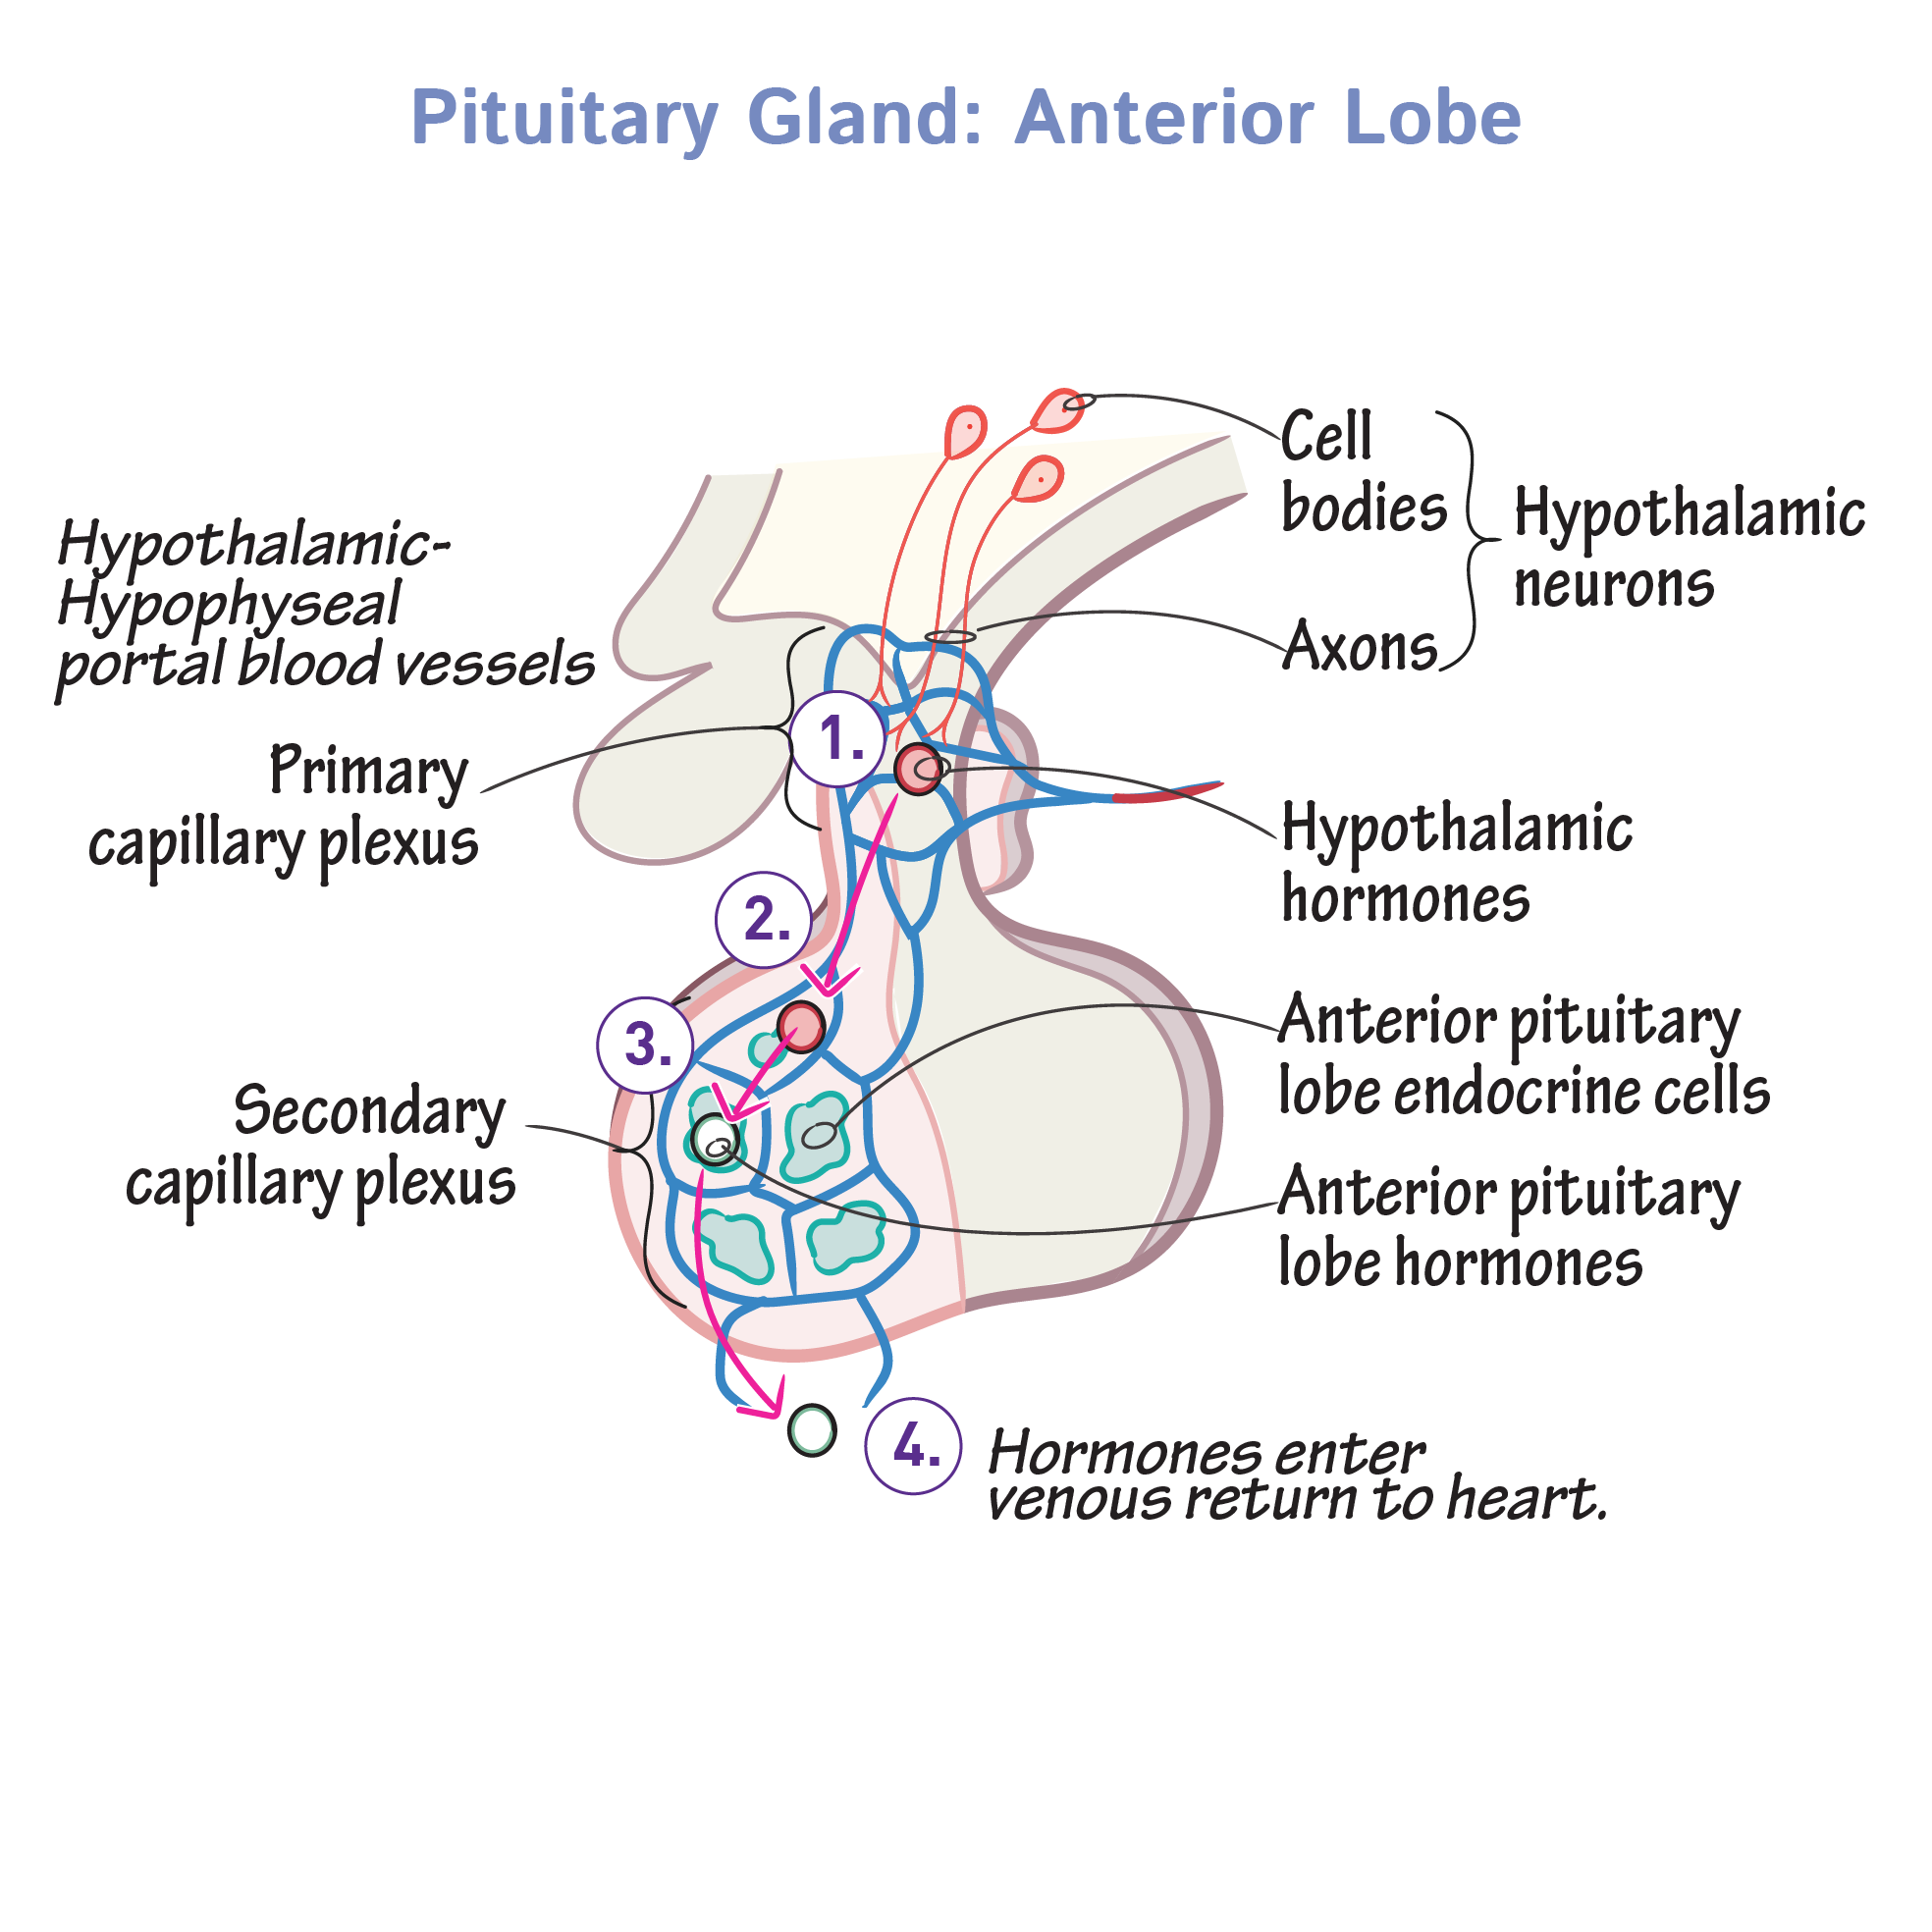 Physiology Glossary Pituitary Gland Anterior Lobe Draw It To Know It